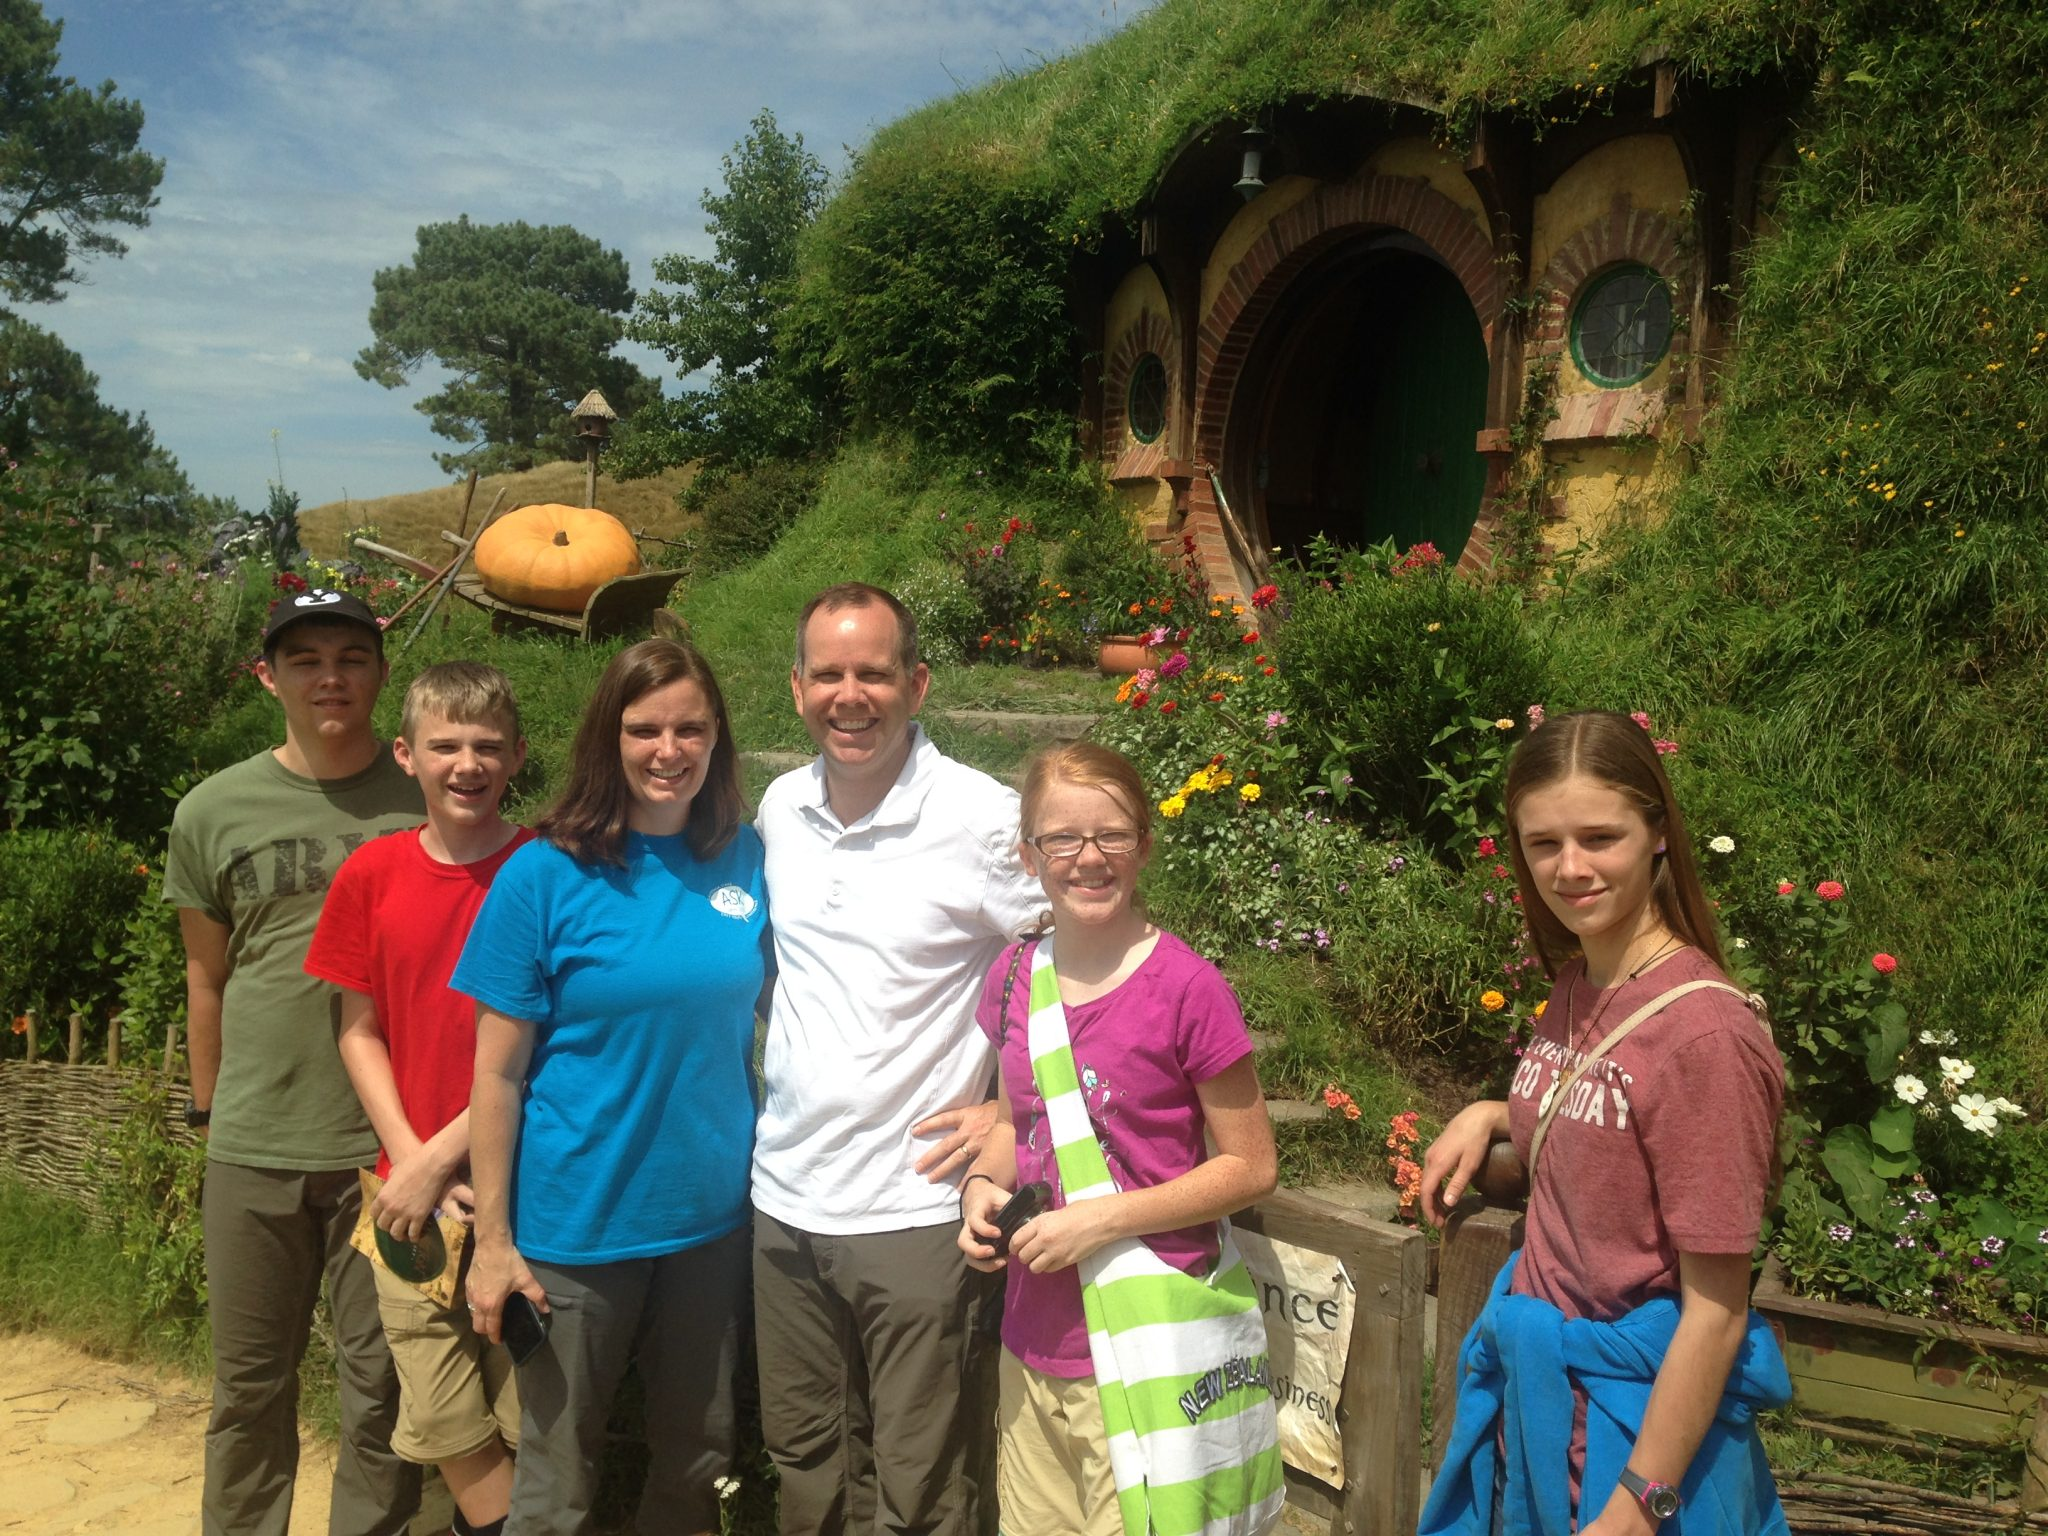 Bilbo Baggin's hobbit hole in the Shire, Hobbiton Movie Set, New Zealand.